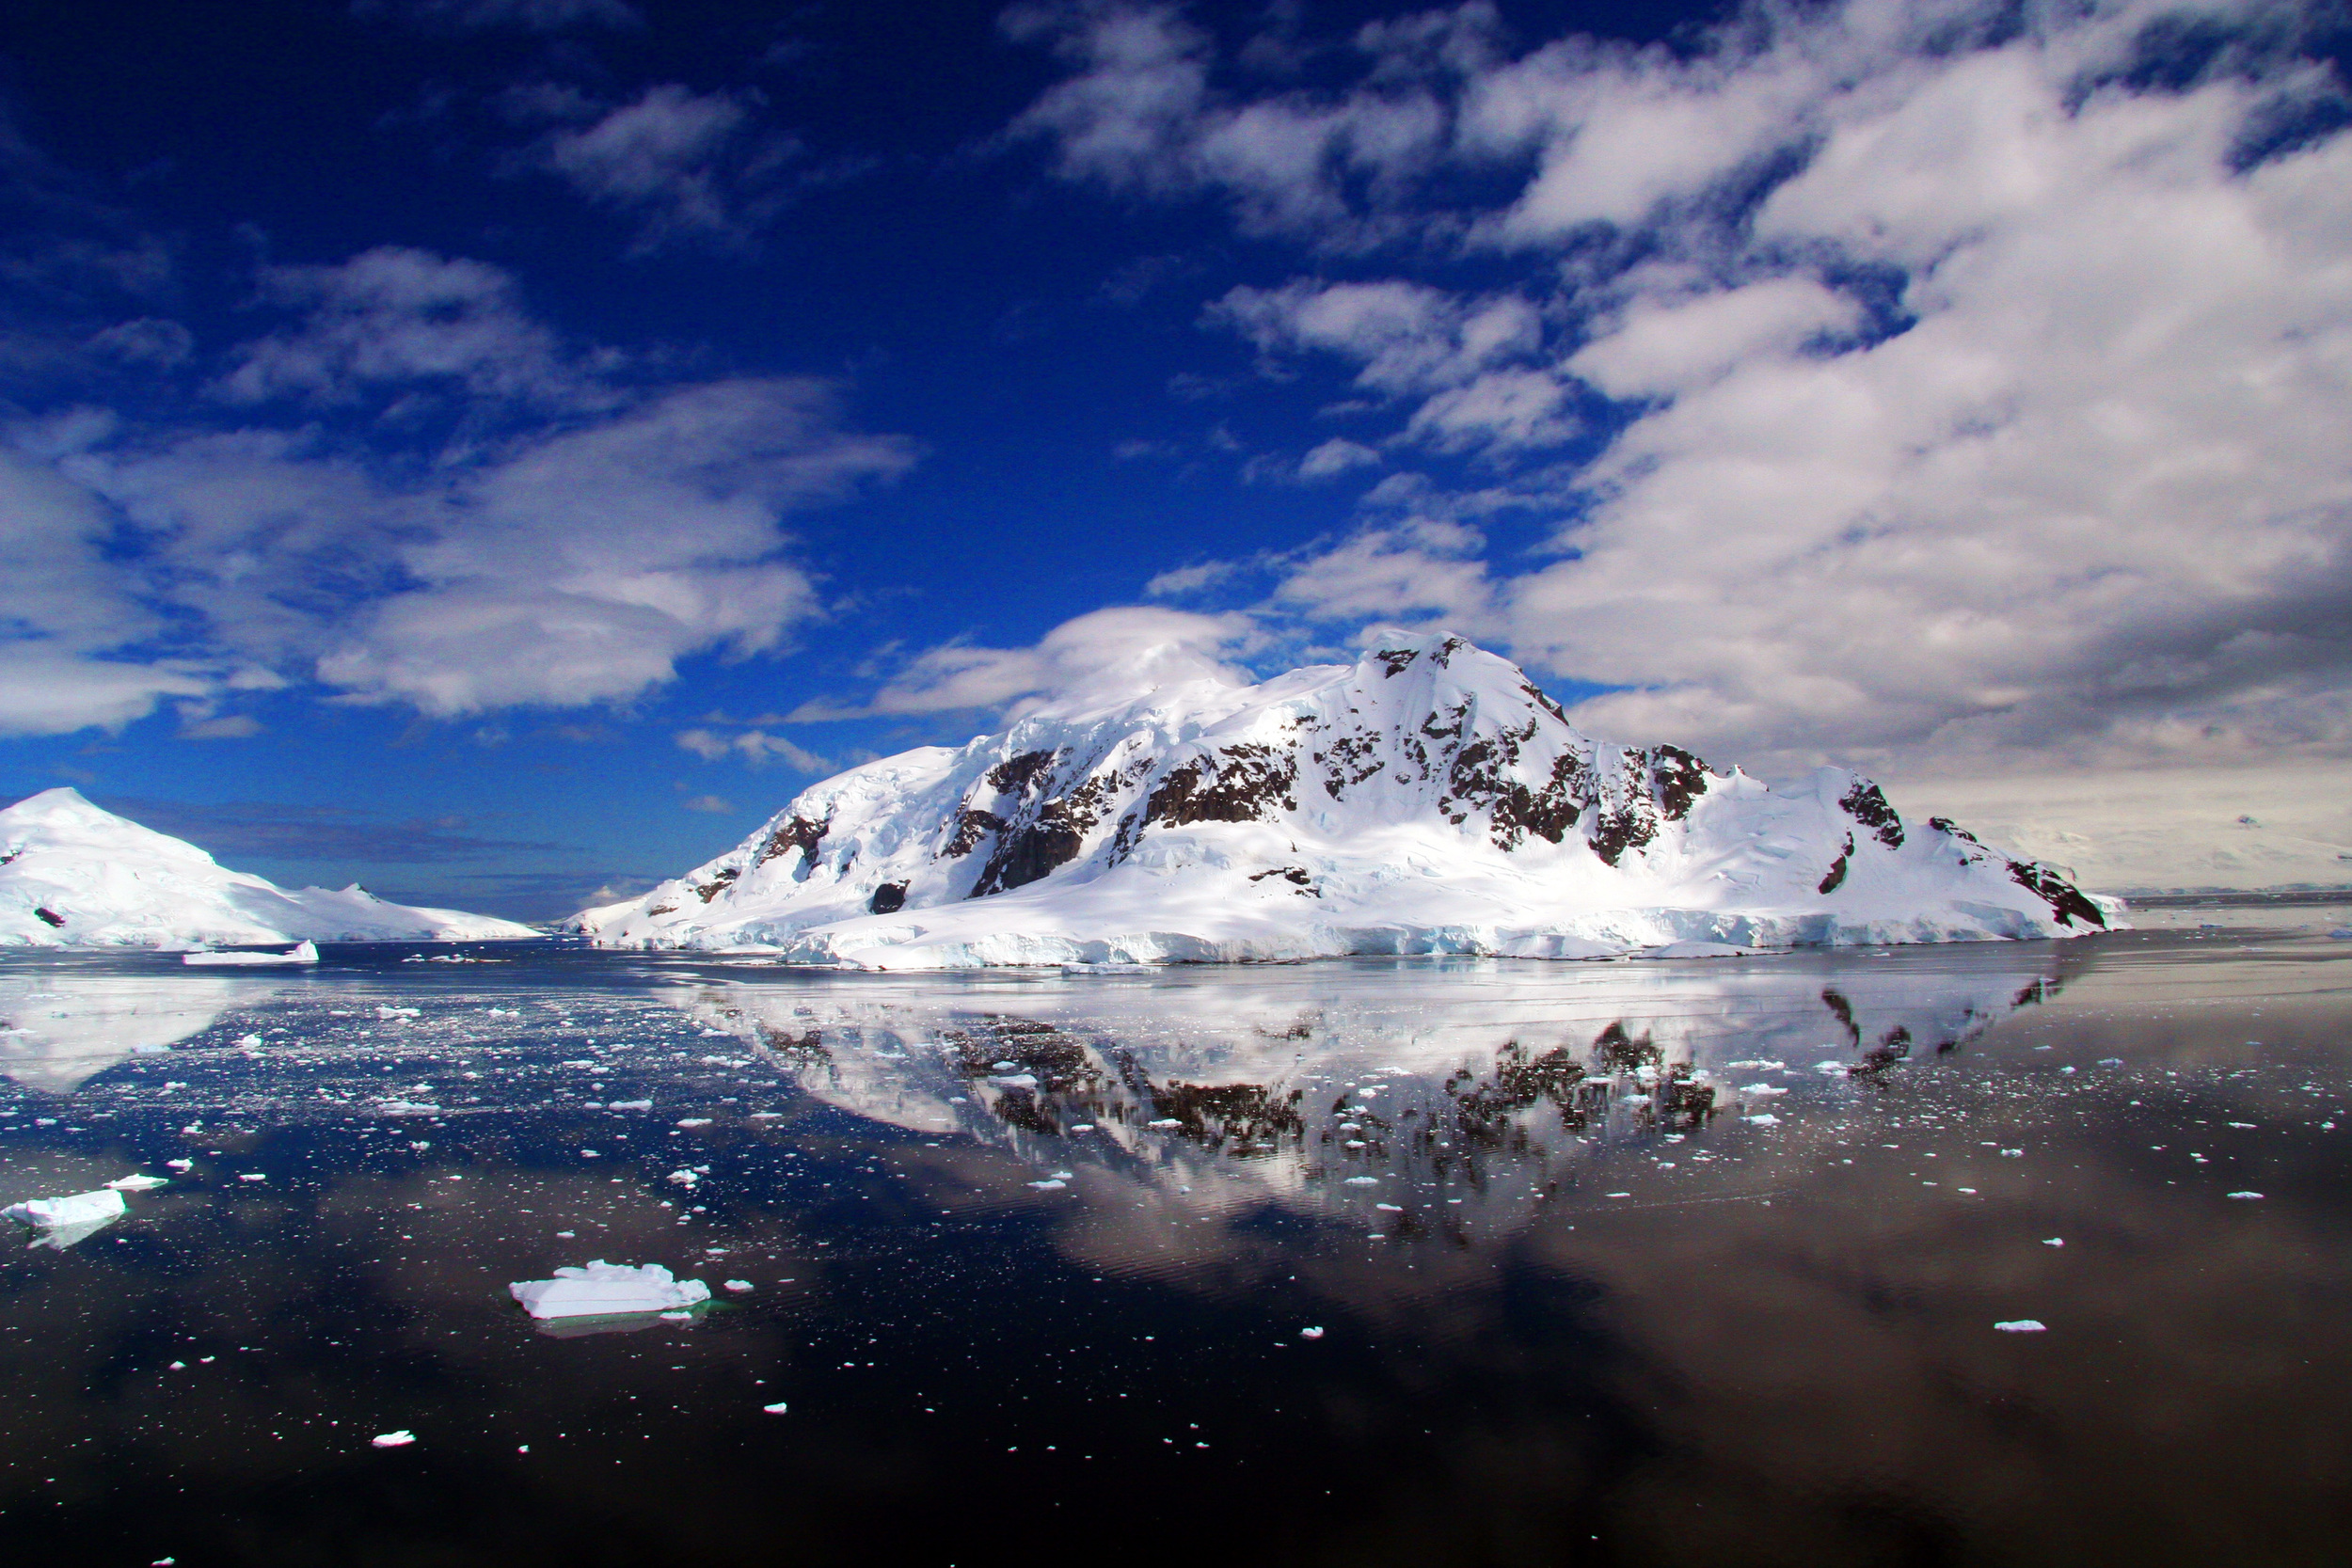 Incredible view from the top of a mountain in Antarctica